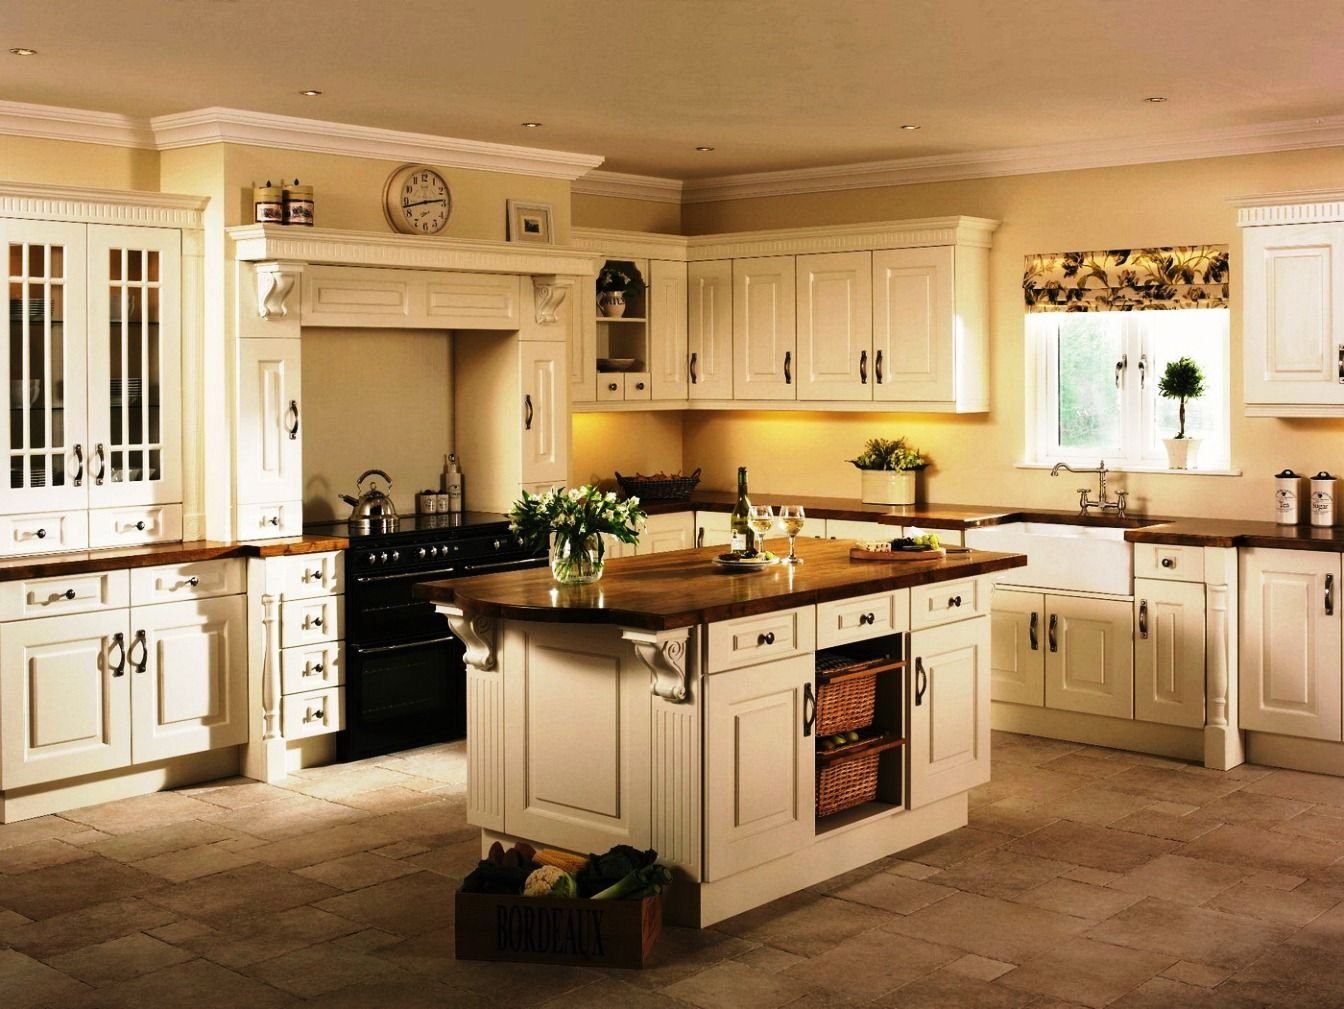 Cream Cabinets With A Wooden Countertop Omg Love This Country Kitchen Cabinets Painted Kitchen Cabinets Colors Ivory Kitchen Cabinets